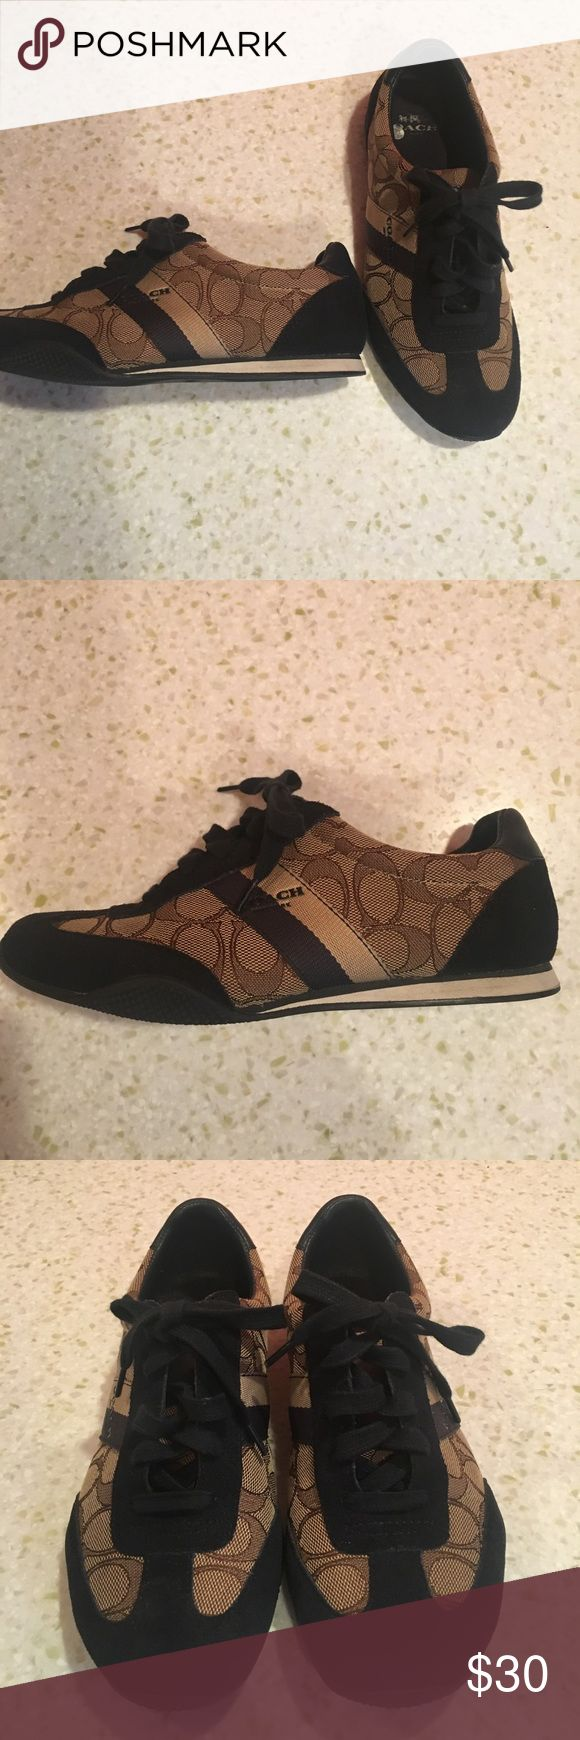 Authentic Coach tennis shoes. Non smoking home. Authentic Coach Tennis Shoes. Great condition. Super cute. Suede black trim. Leather heel back. Perfect for fall. Non smoking home. Coach Shoes Sneakers